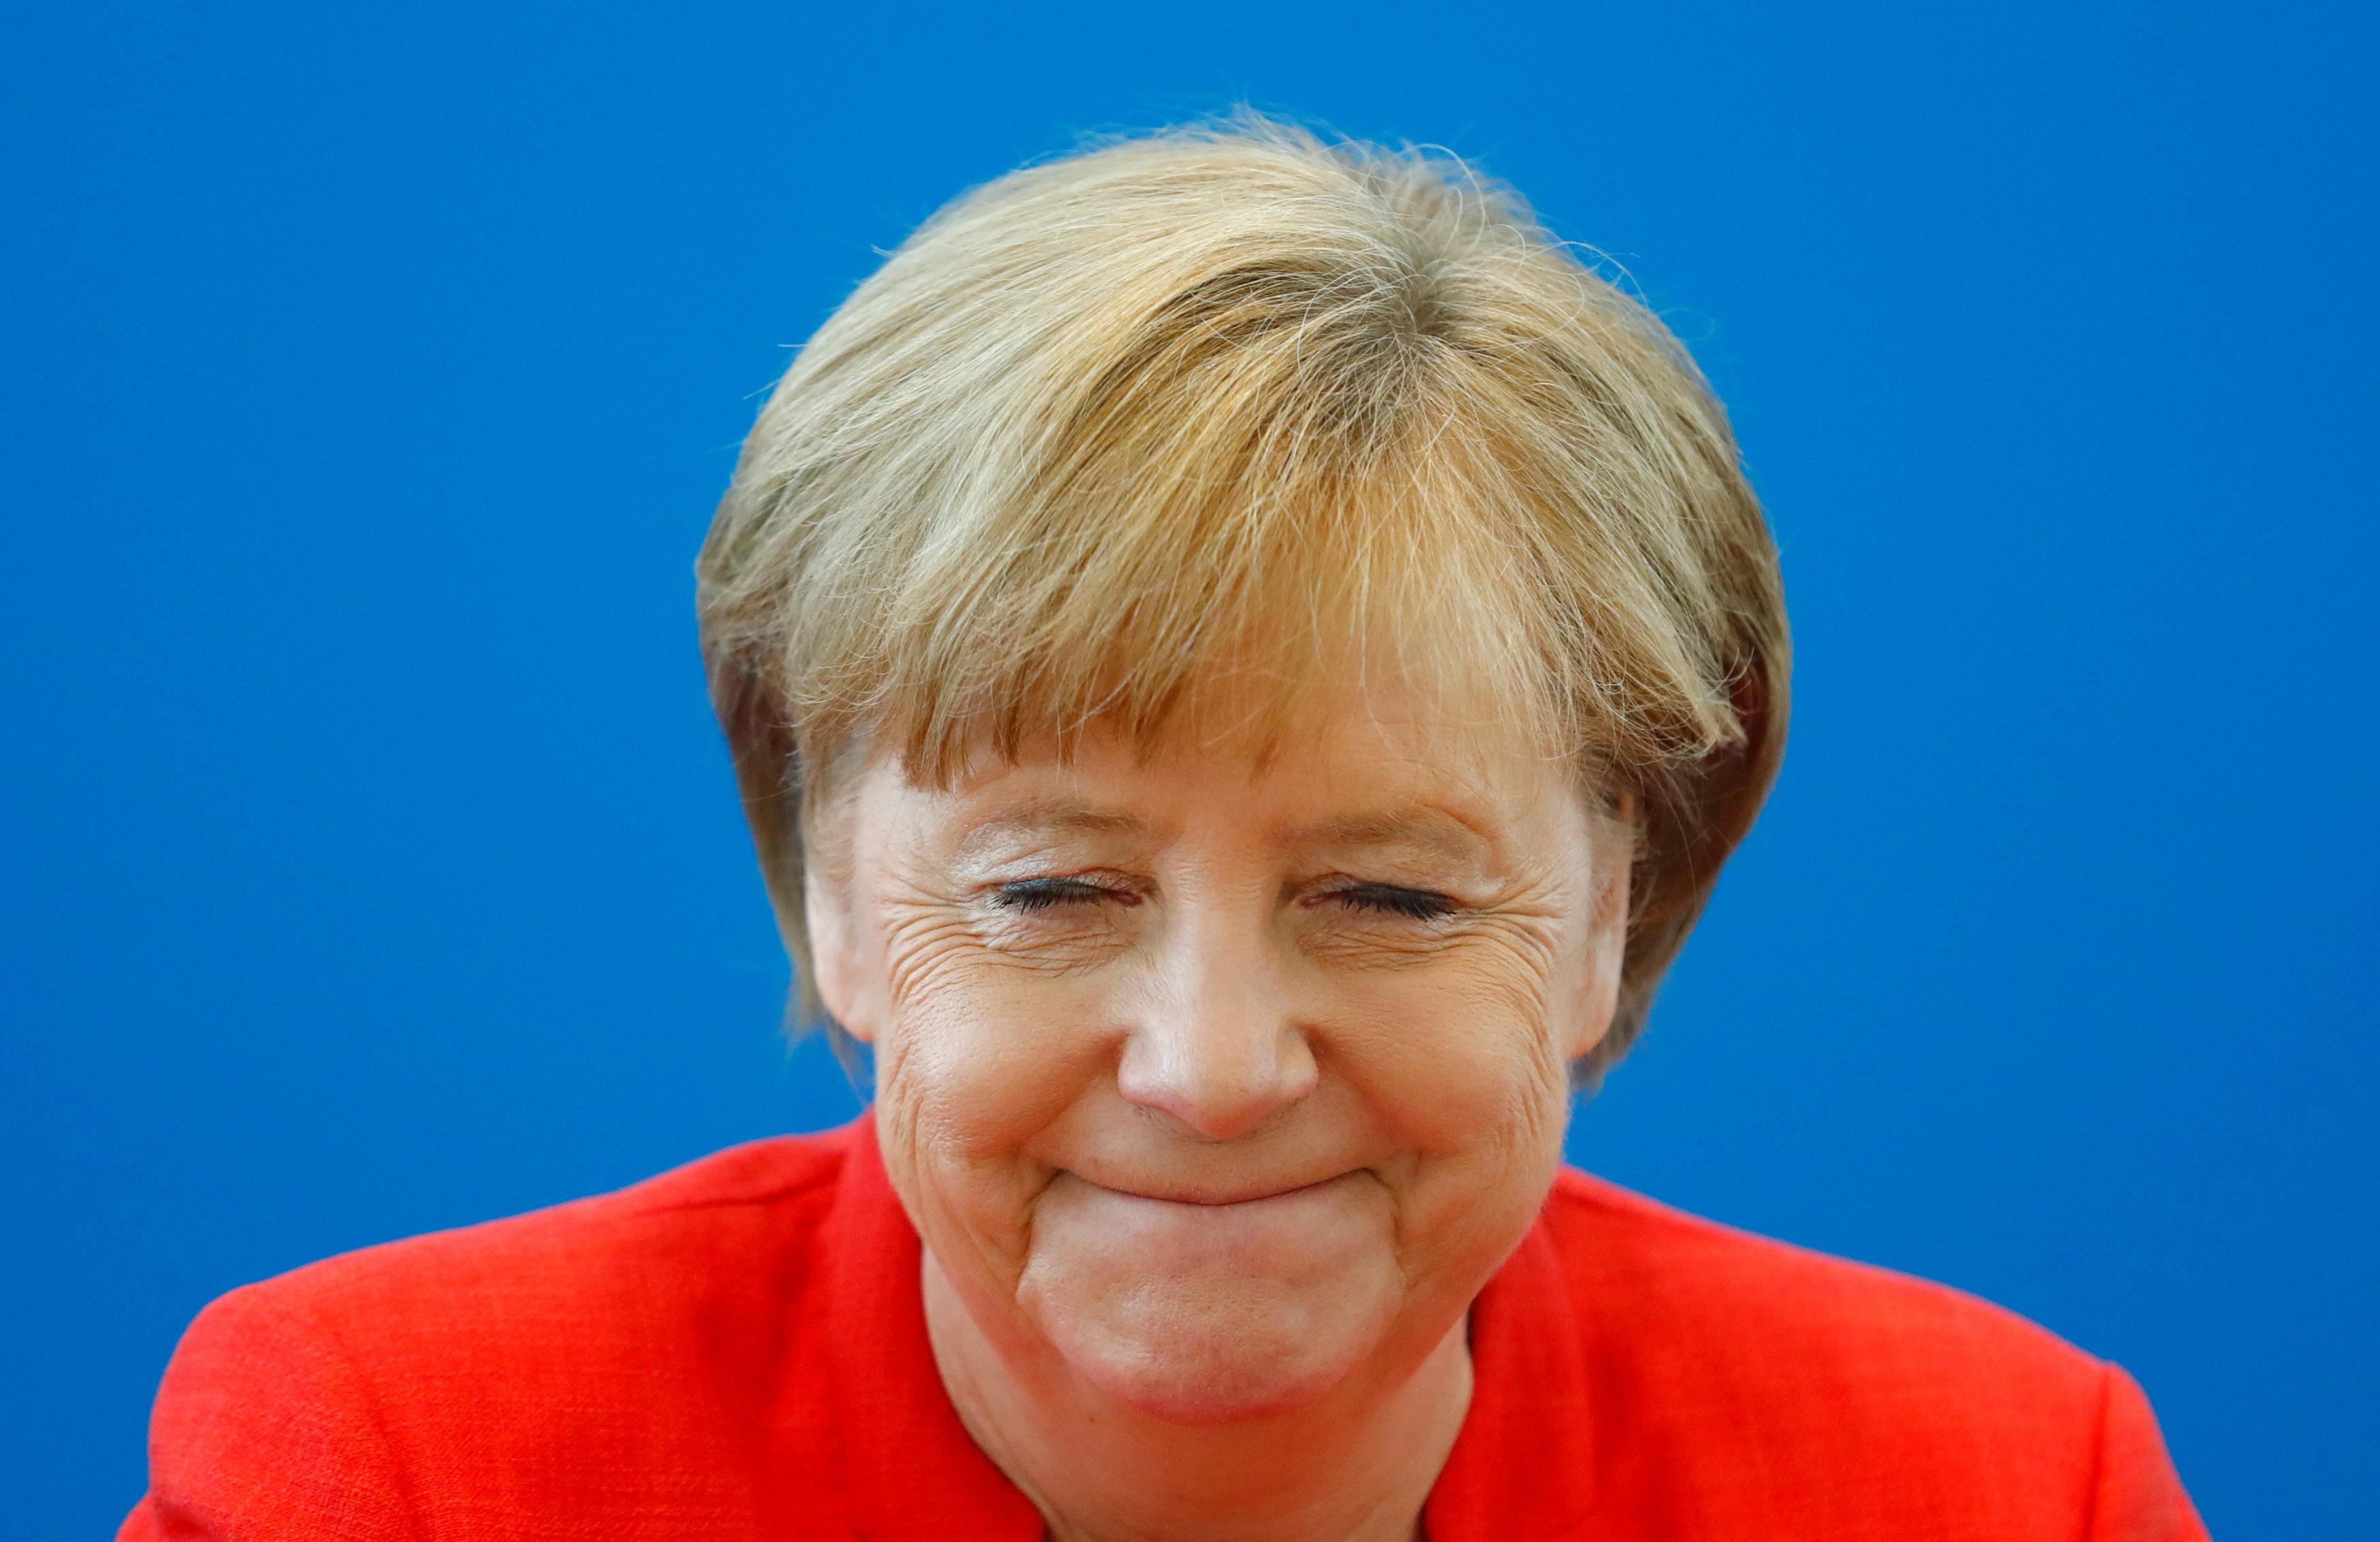 German Chancellor Angela Merkel reacts as she attends the board meeting of Germany's Christian Democratic Union (CDU) in Berlin, Germany, June 18 2018. Hannibal Hanschke